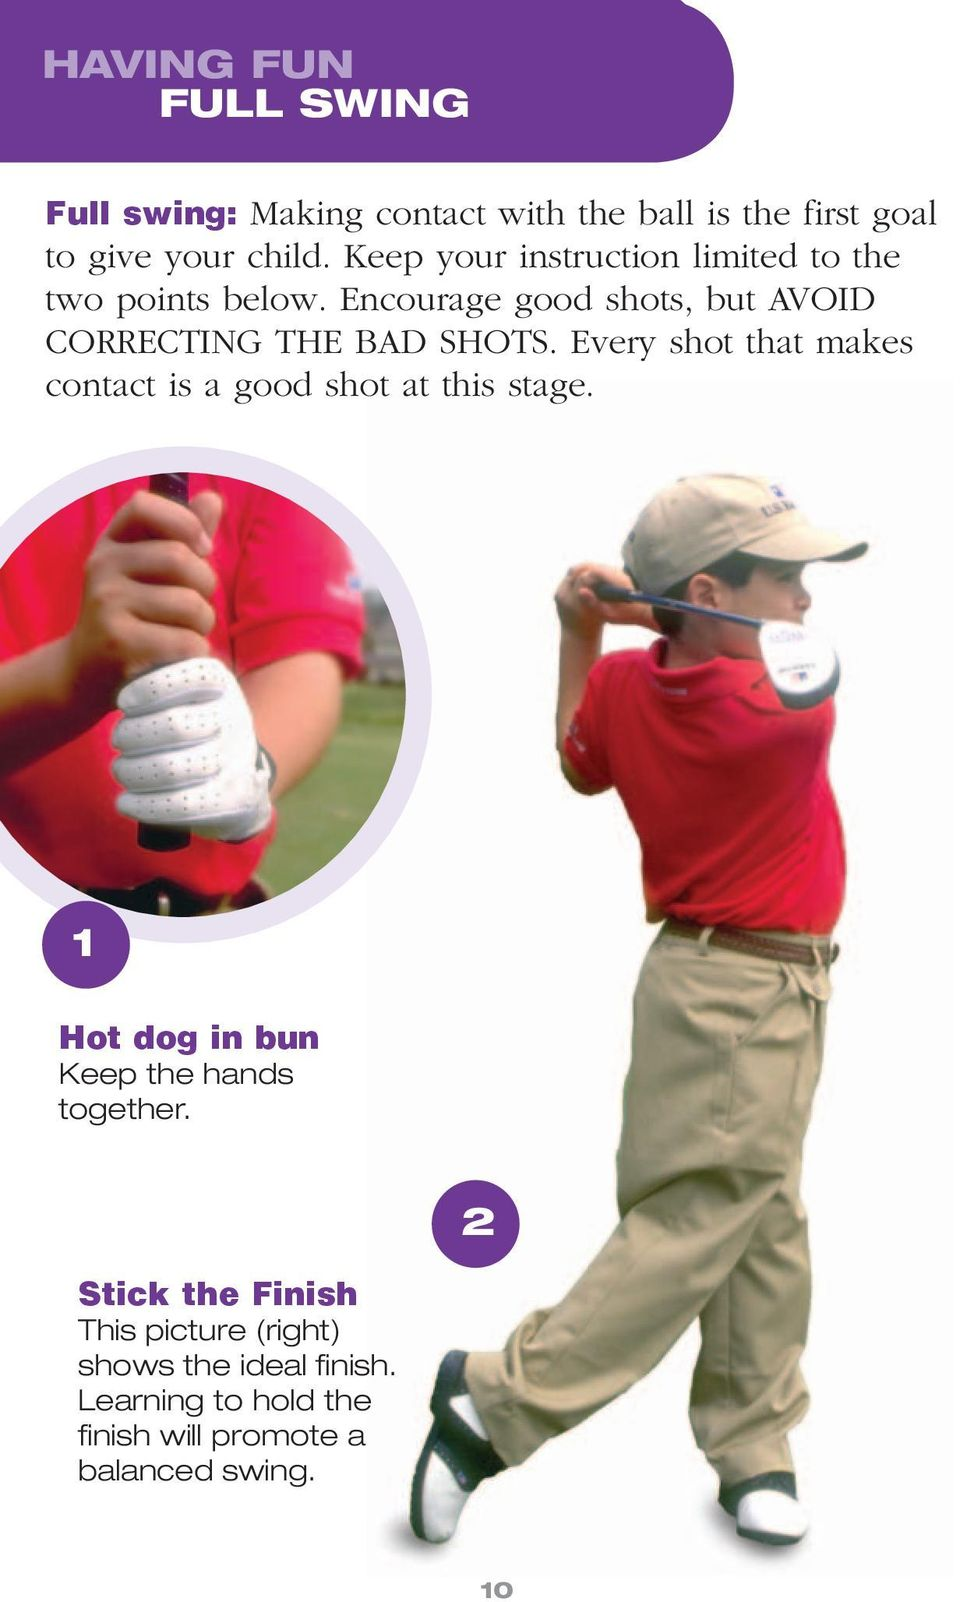 Encourage good shots, but avoid correcting the bad shots.